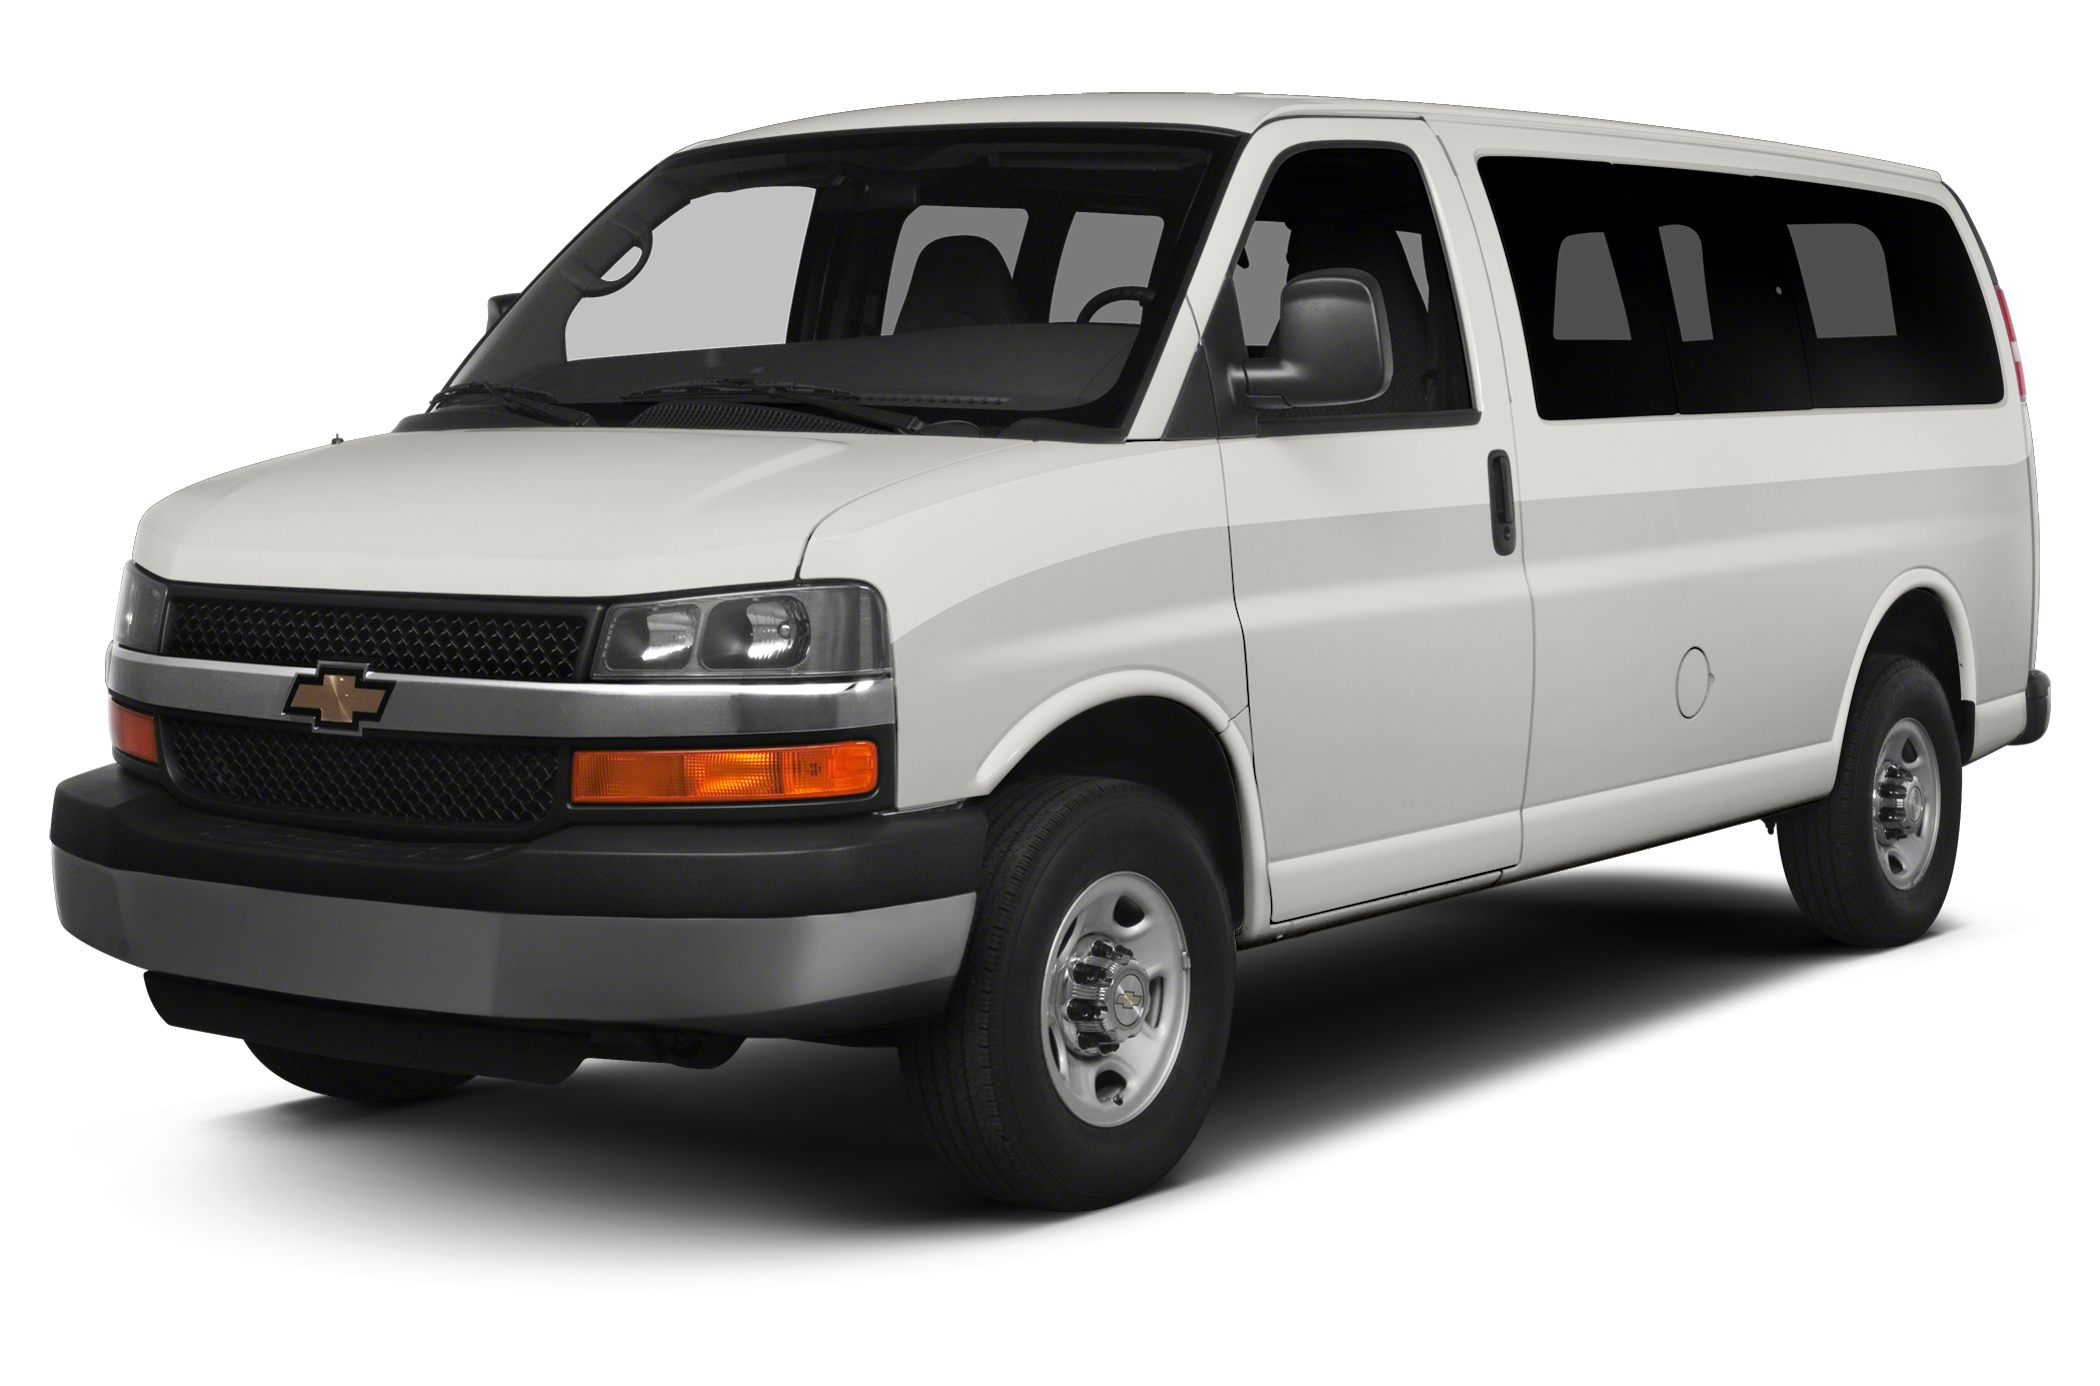 2013 Chevrolet Express 3500 LT Passenger Van for sale in Kansas City for $25,980 with 33,055 miles